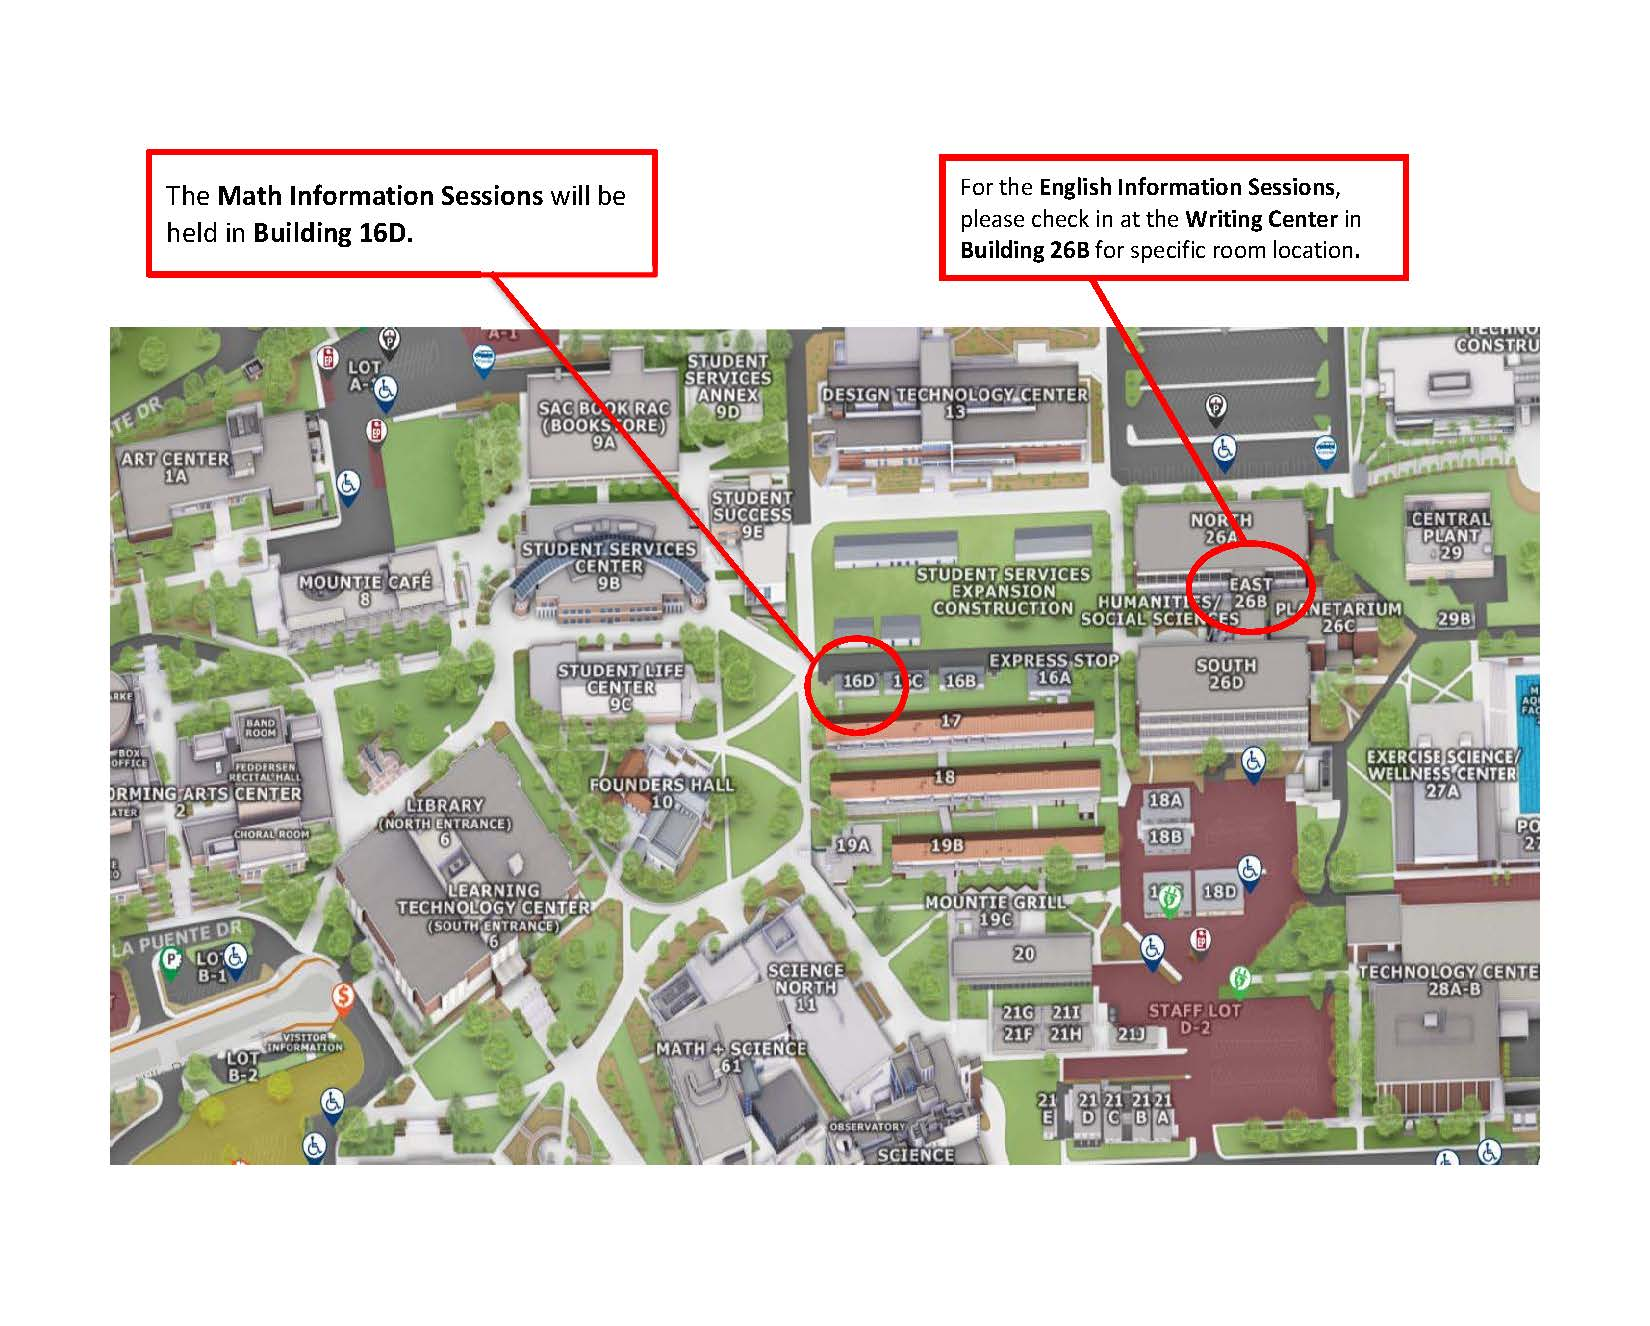 Test Info Session Map-Location of Info Sessions